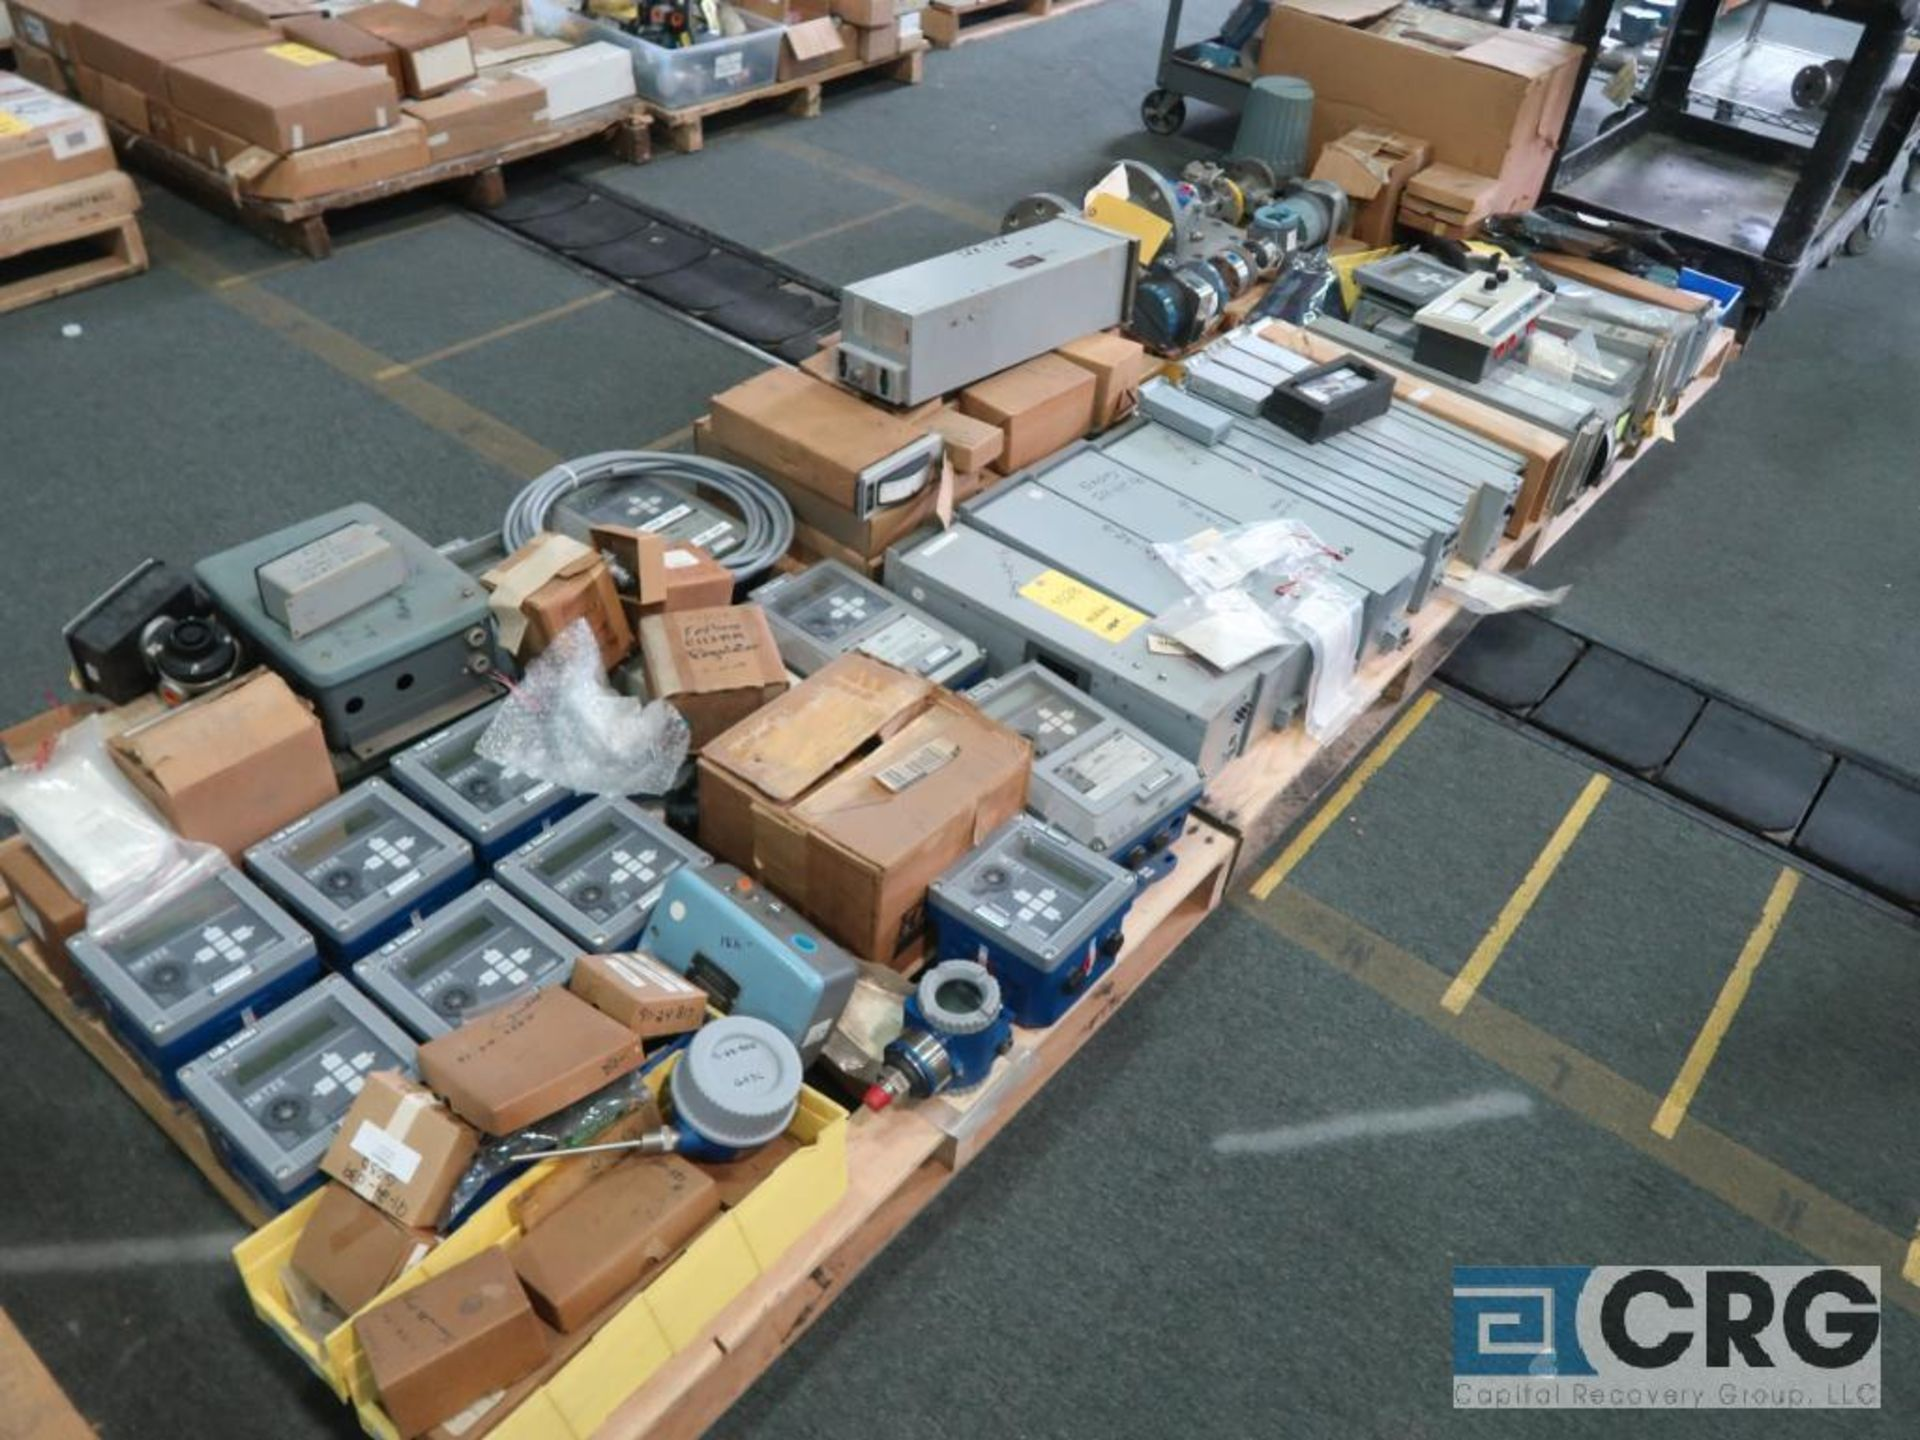 Lot of Foxboro instrumentation on (3) pallets including sensors, recorders, touch screen, and modems